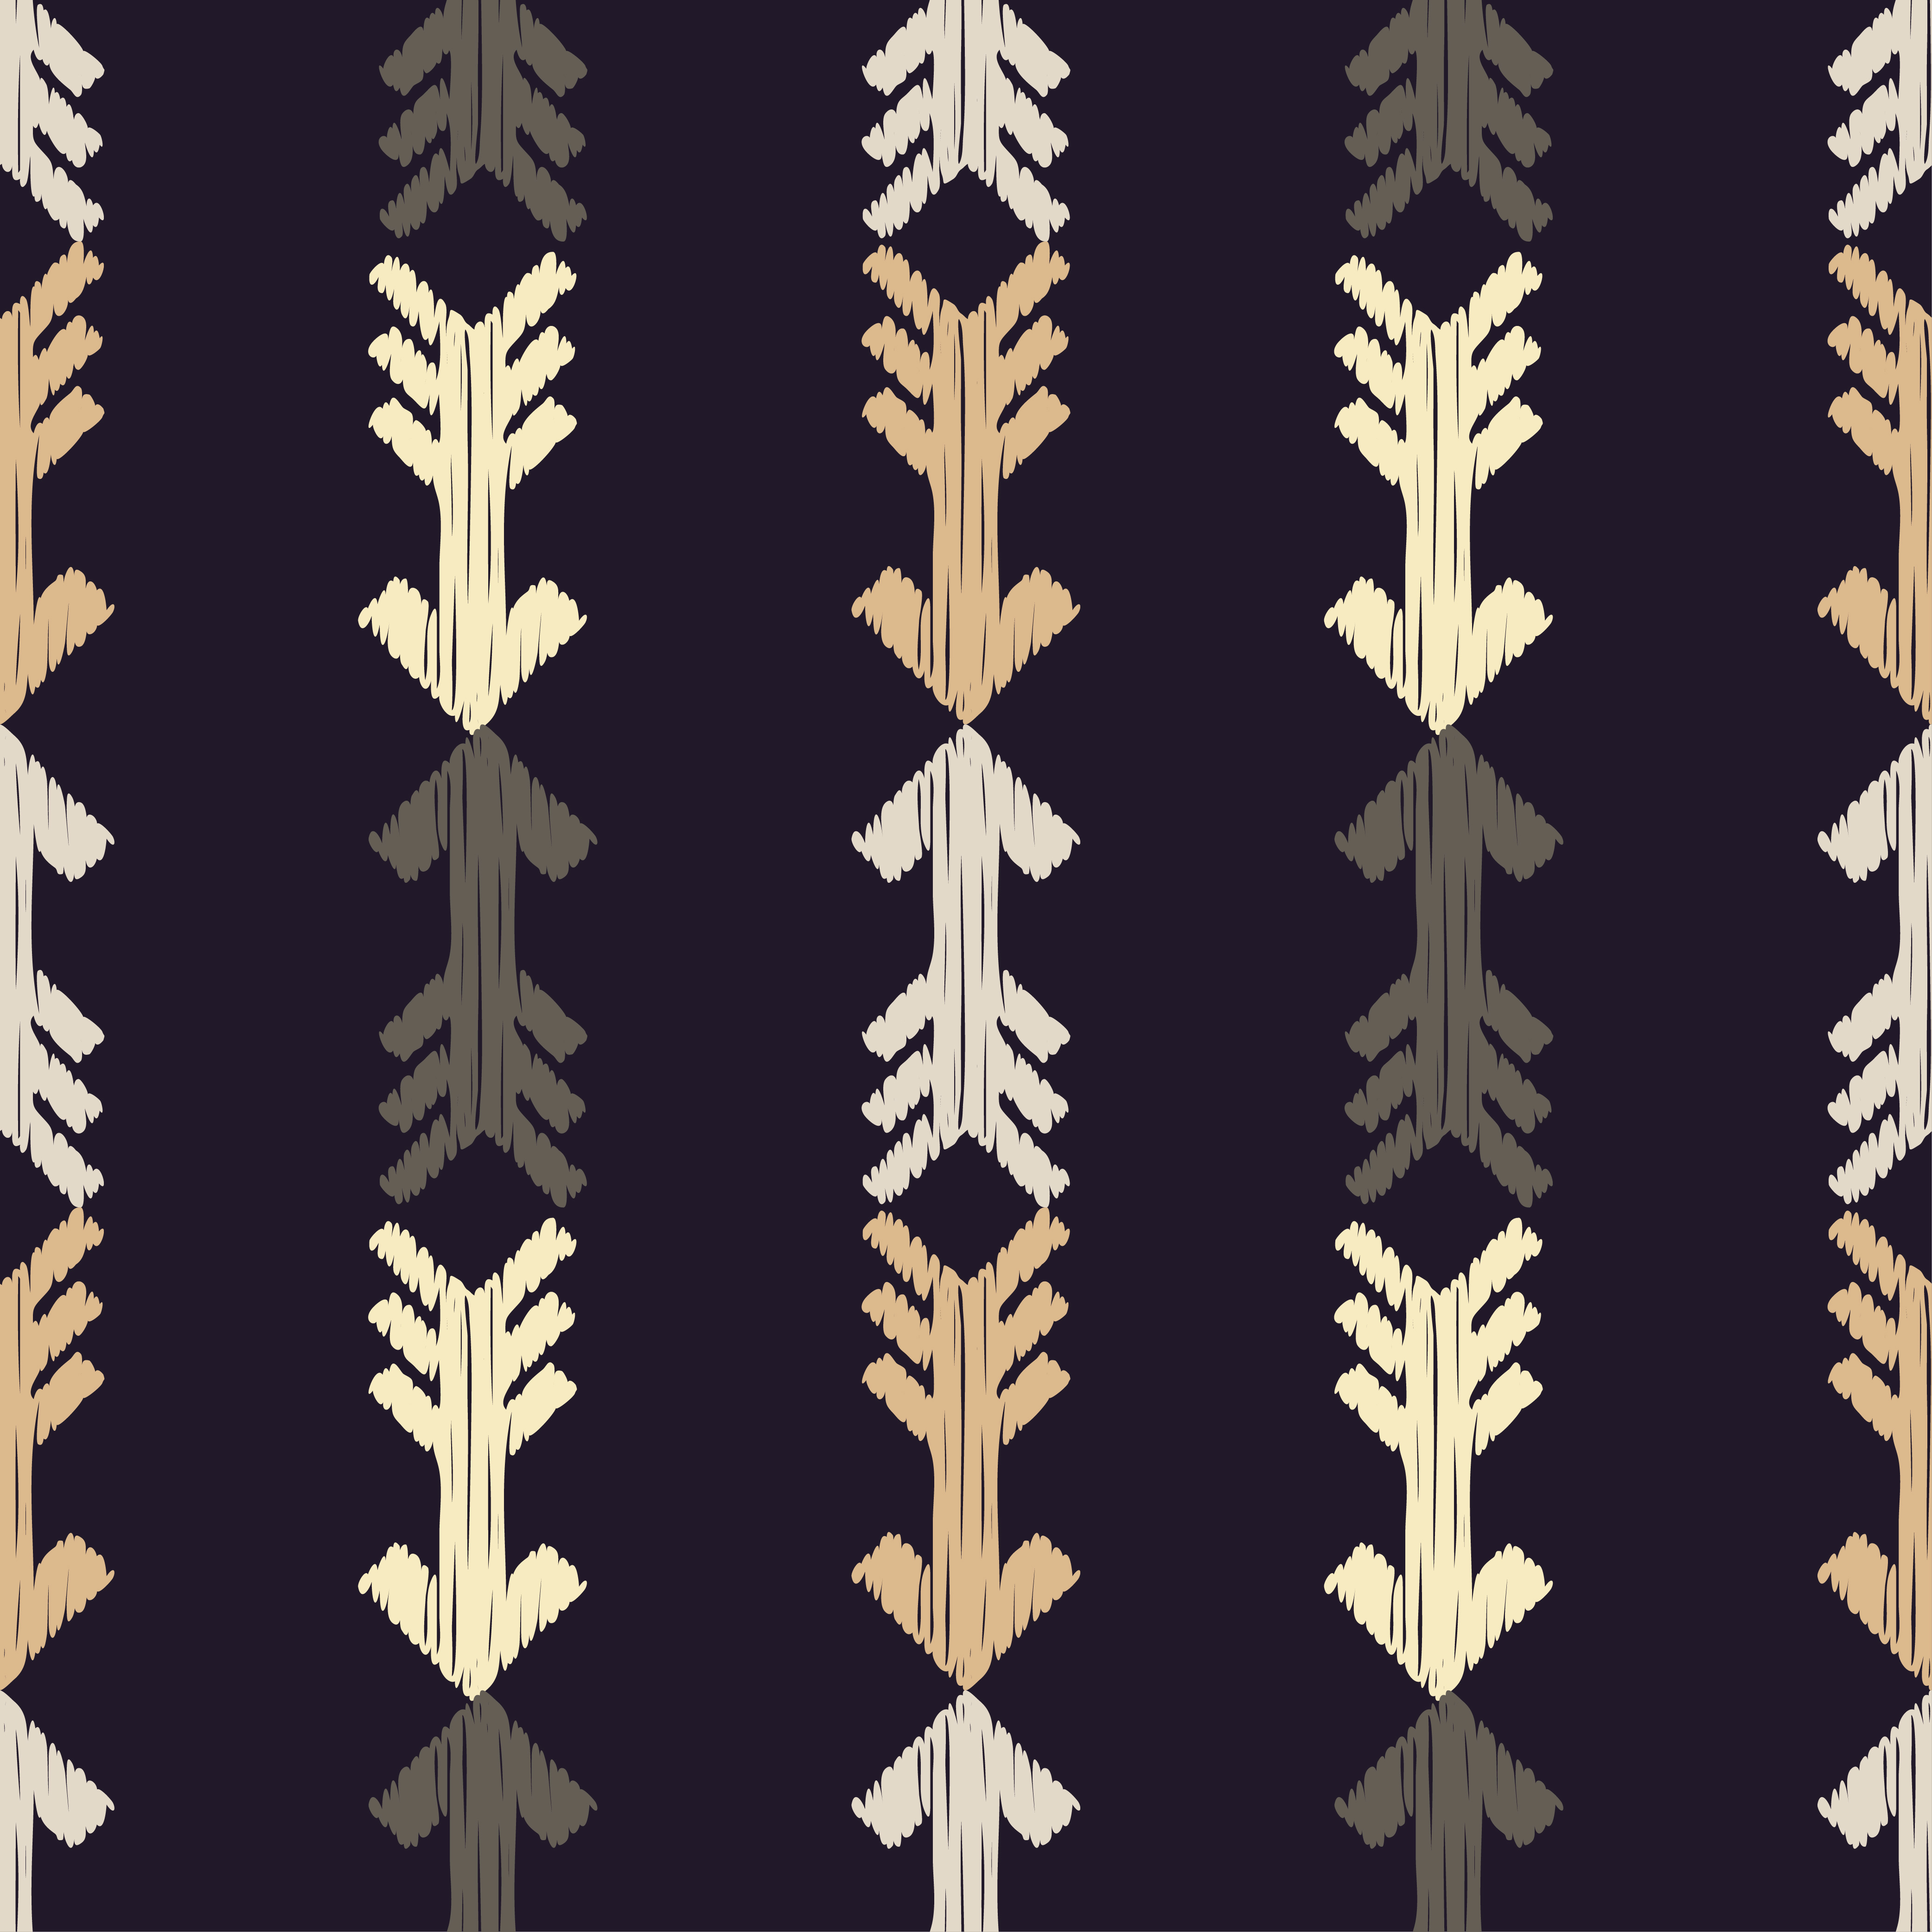 6 Ethnic boho seamless pattern. Arrows scribble texture.  example image 2